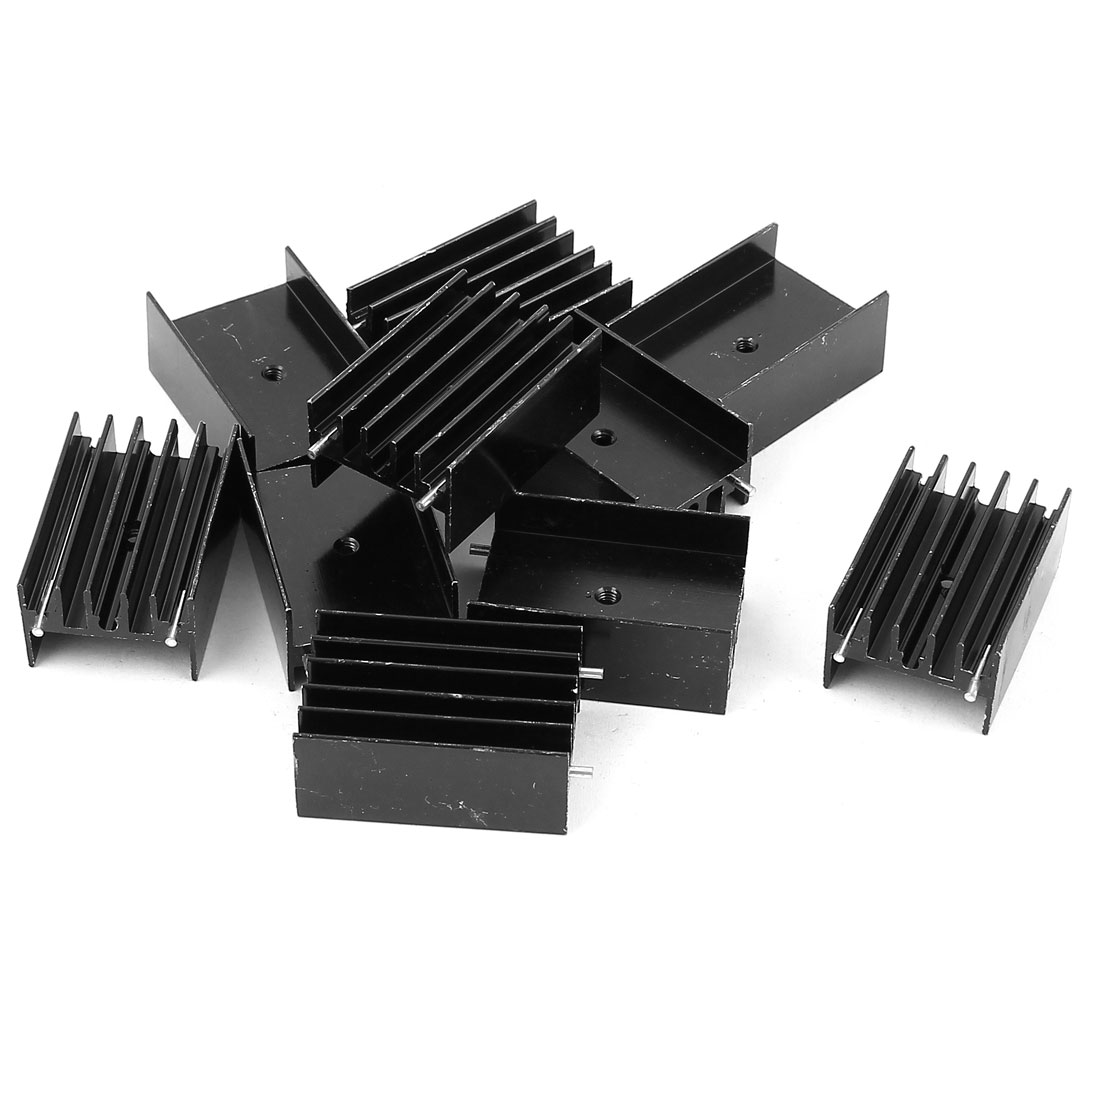 10 Pcs 35mmx23mmx16mm Black Aluminum Heatsinks Radiator + Needles for Mosfet IC